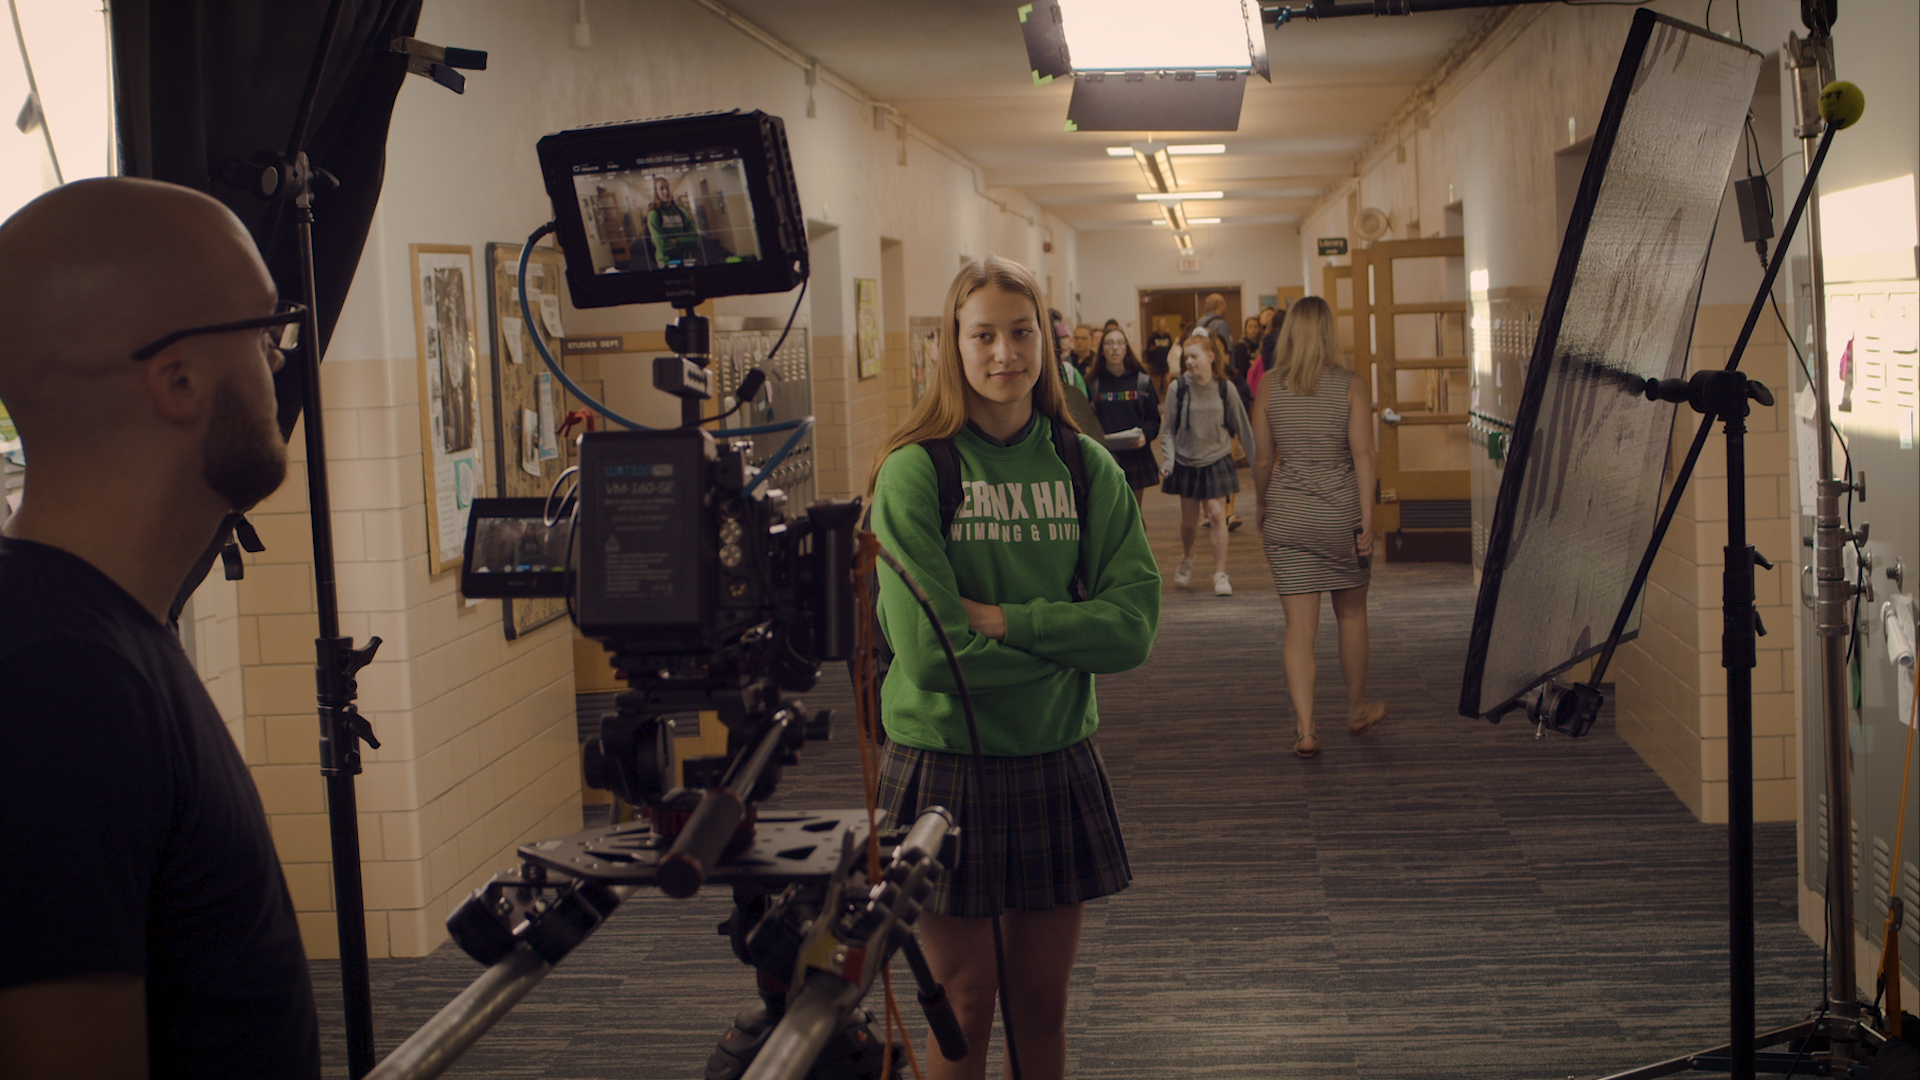 Video Production Company Wins 2 Awards for School Recruitment Video